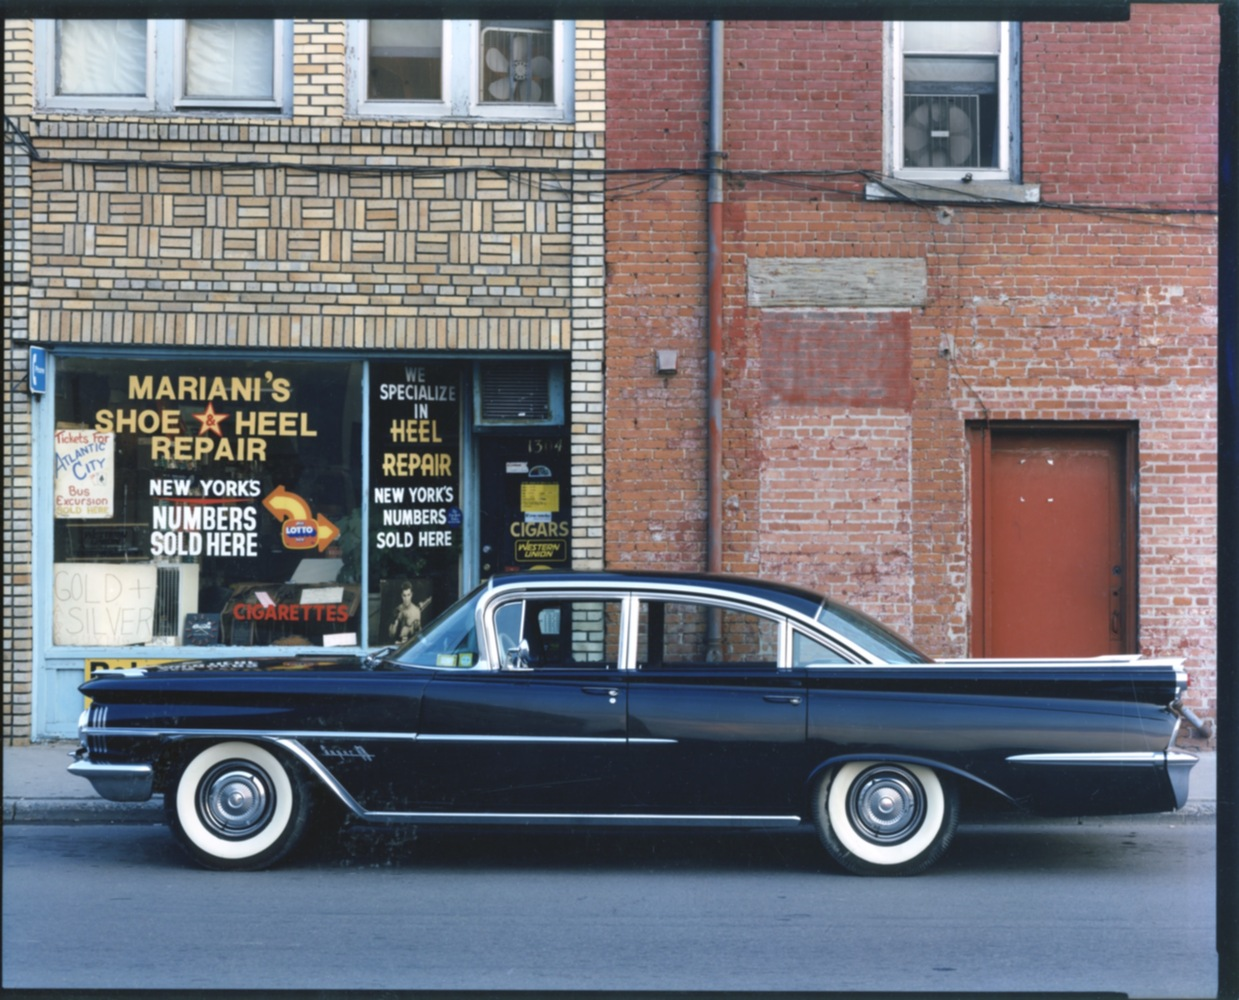 1959 Oldsmobile Super 88, Mariani's Shoe & Heel Repair, Endicott, NY, 1987